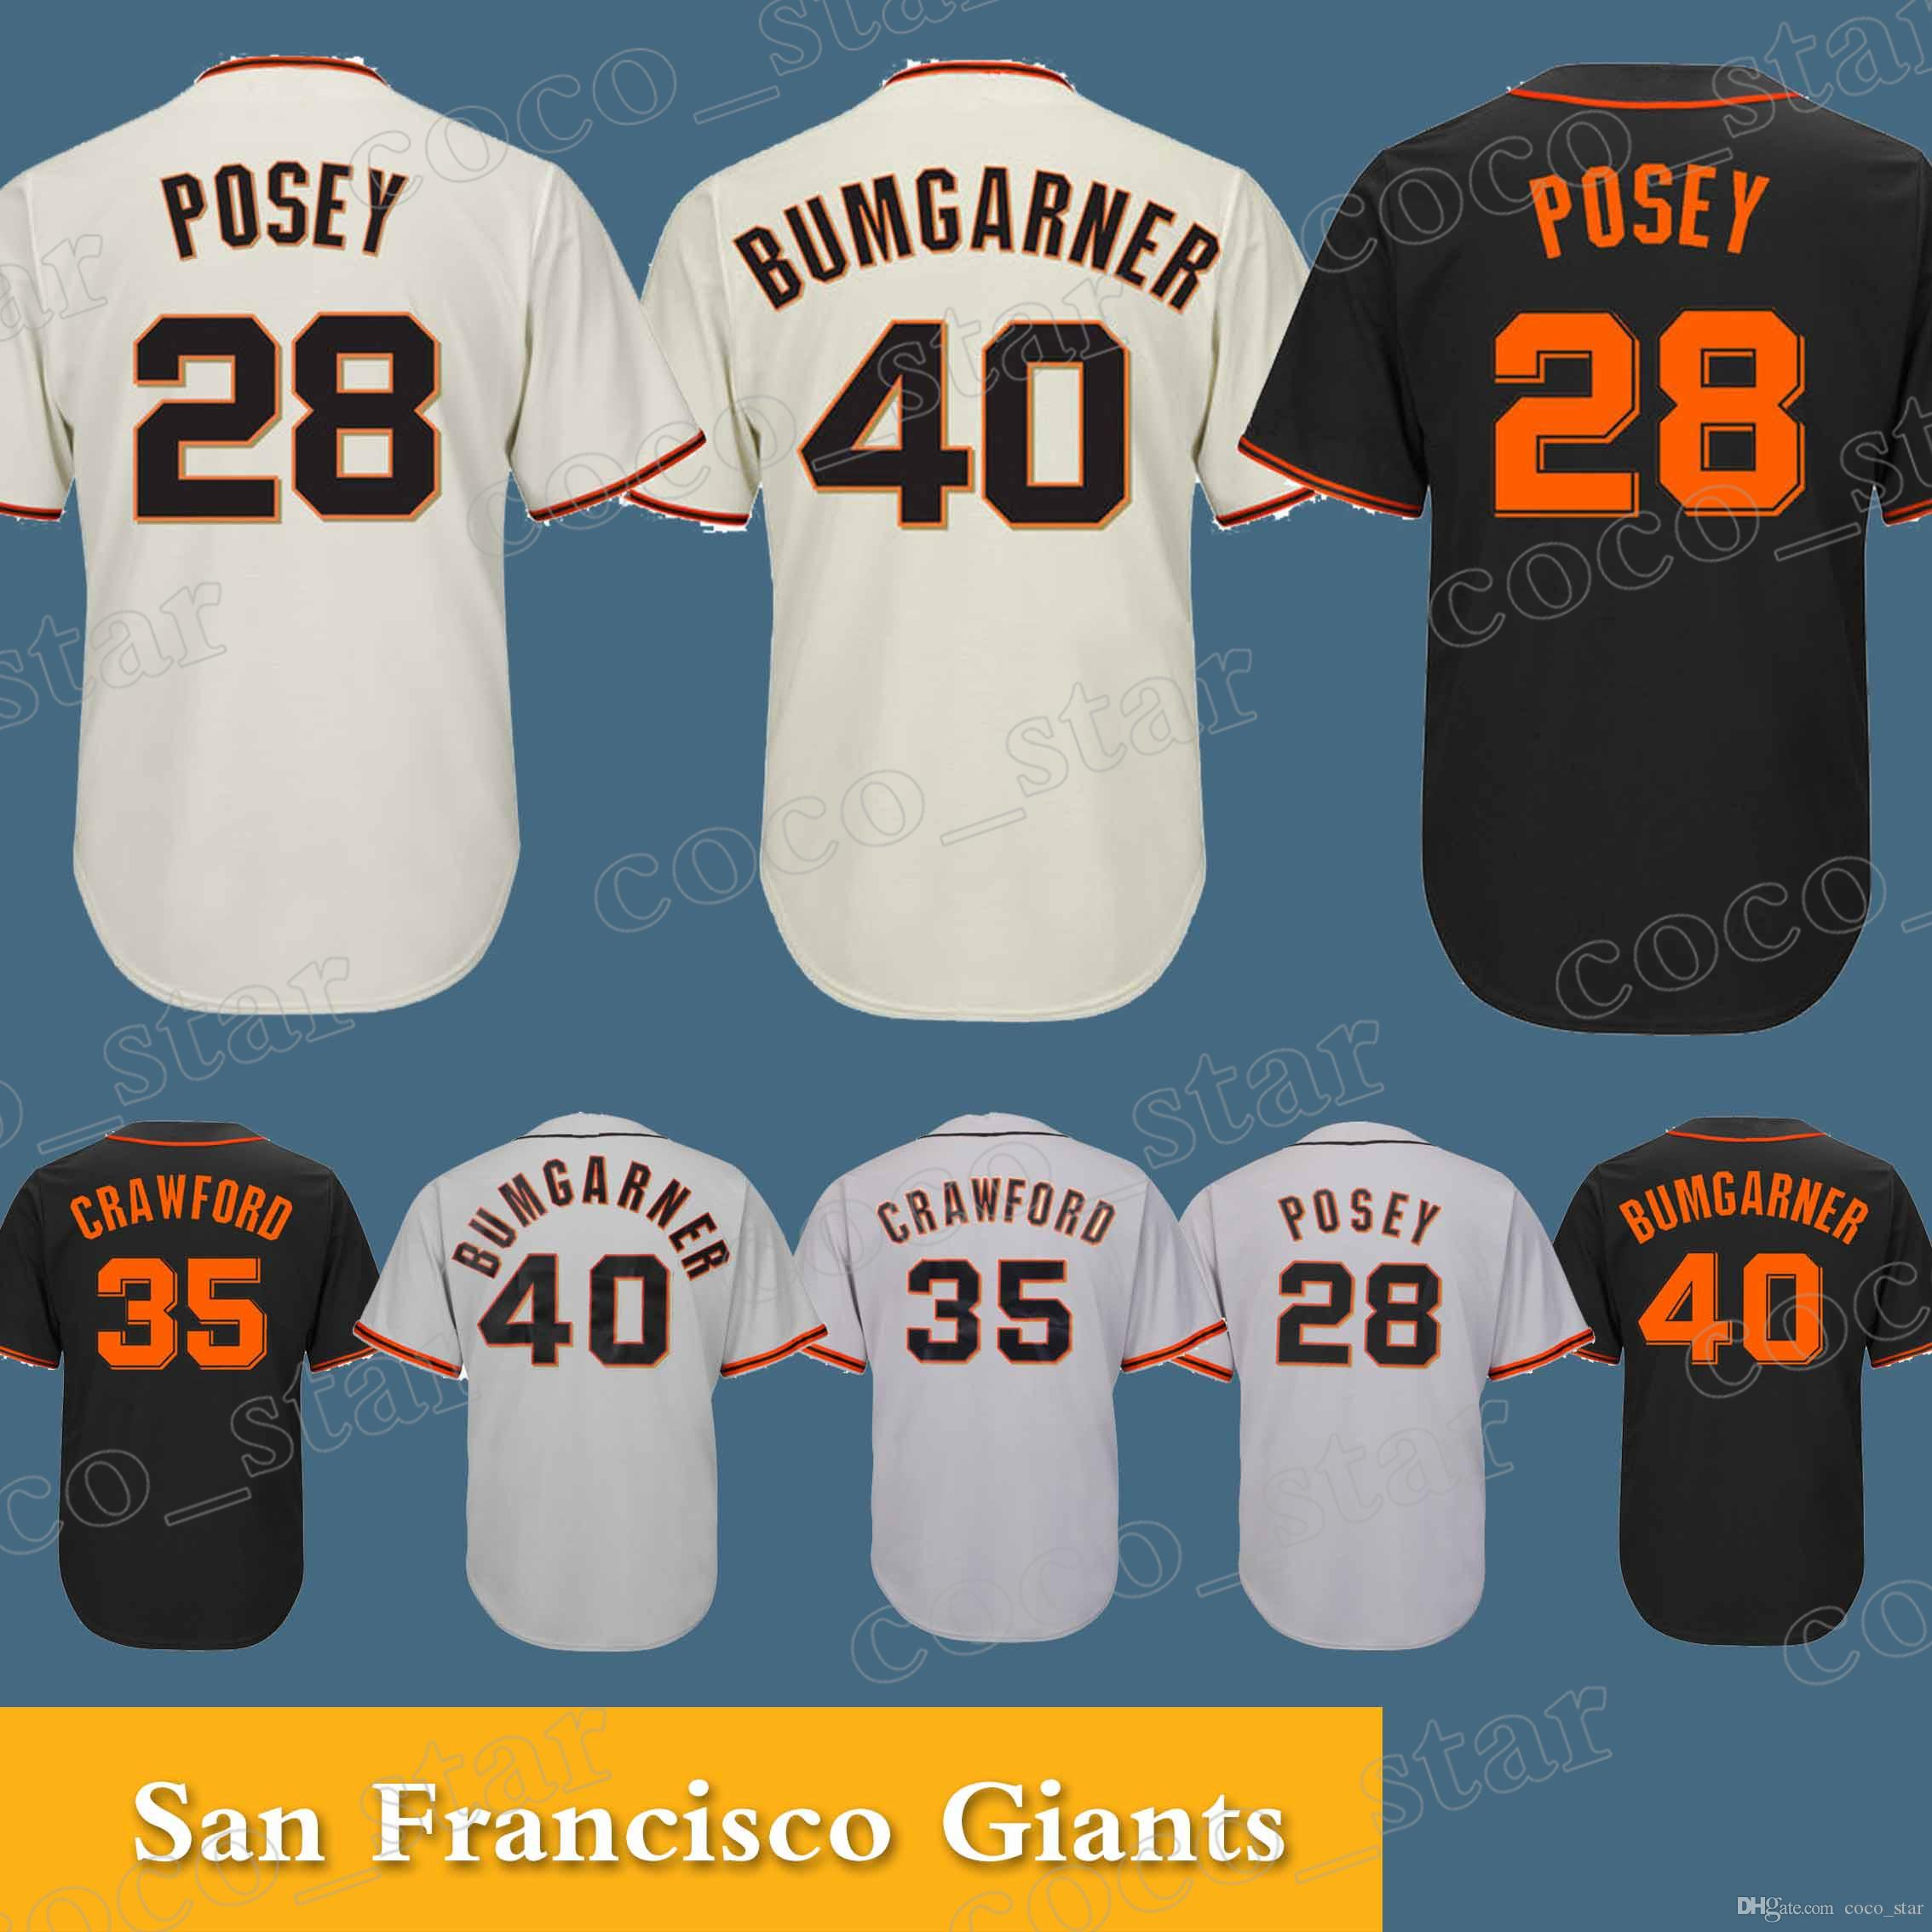 58b871d6 ... top quality discount code for san francisco giants jersey 35 brandon  crawford 40 madison bumgarner high